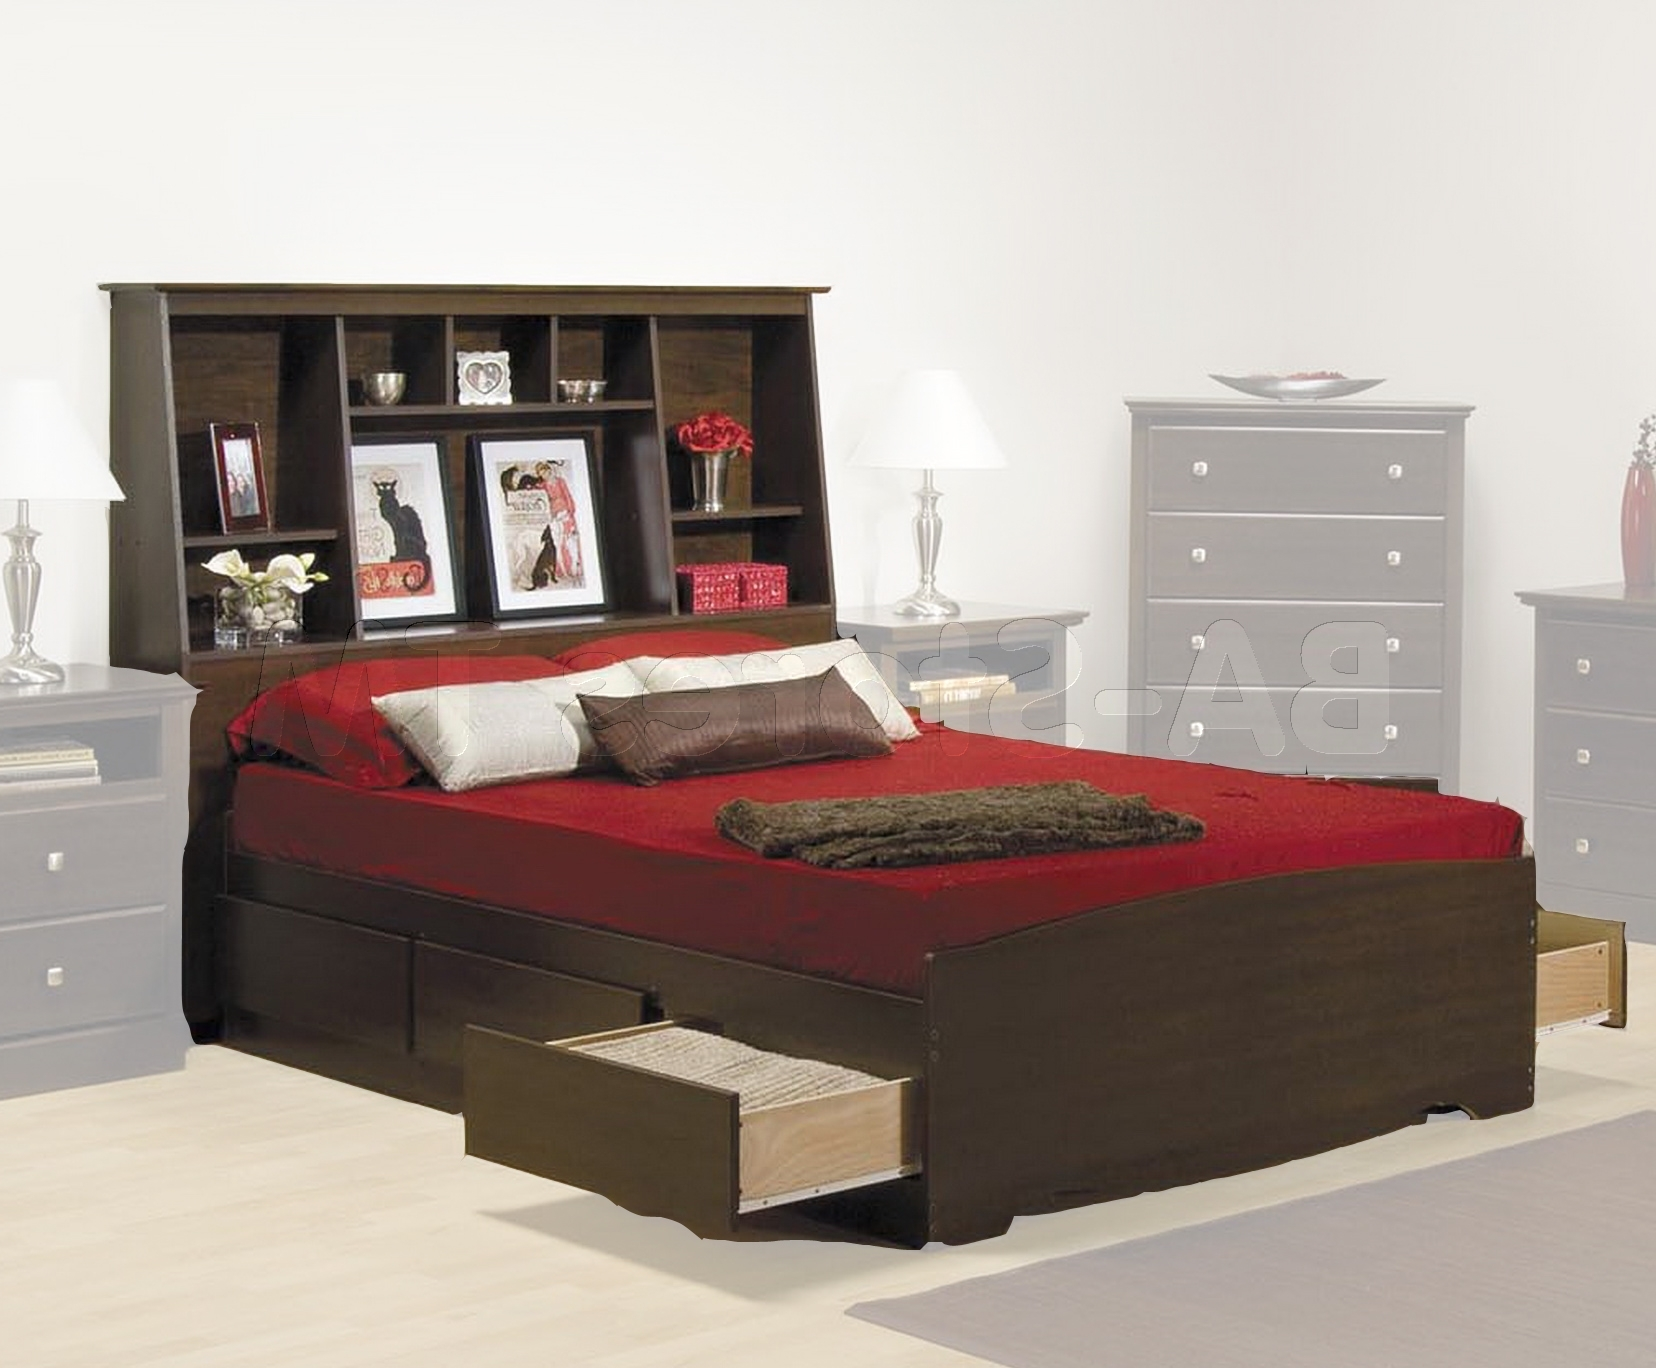 bookcase iron full bed platform and headboard drawers storage to with you size shelves of headboards trundle make cherry king frame twin